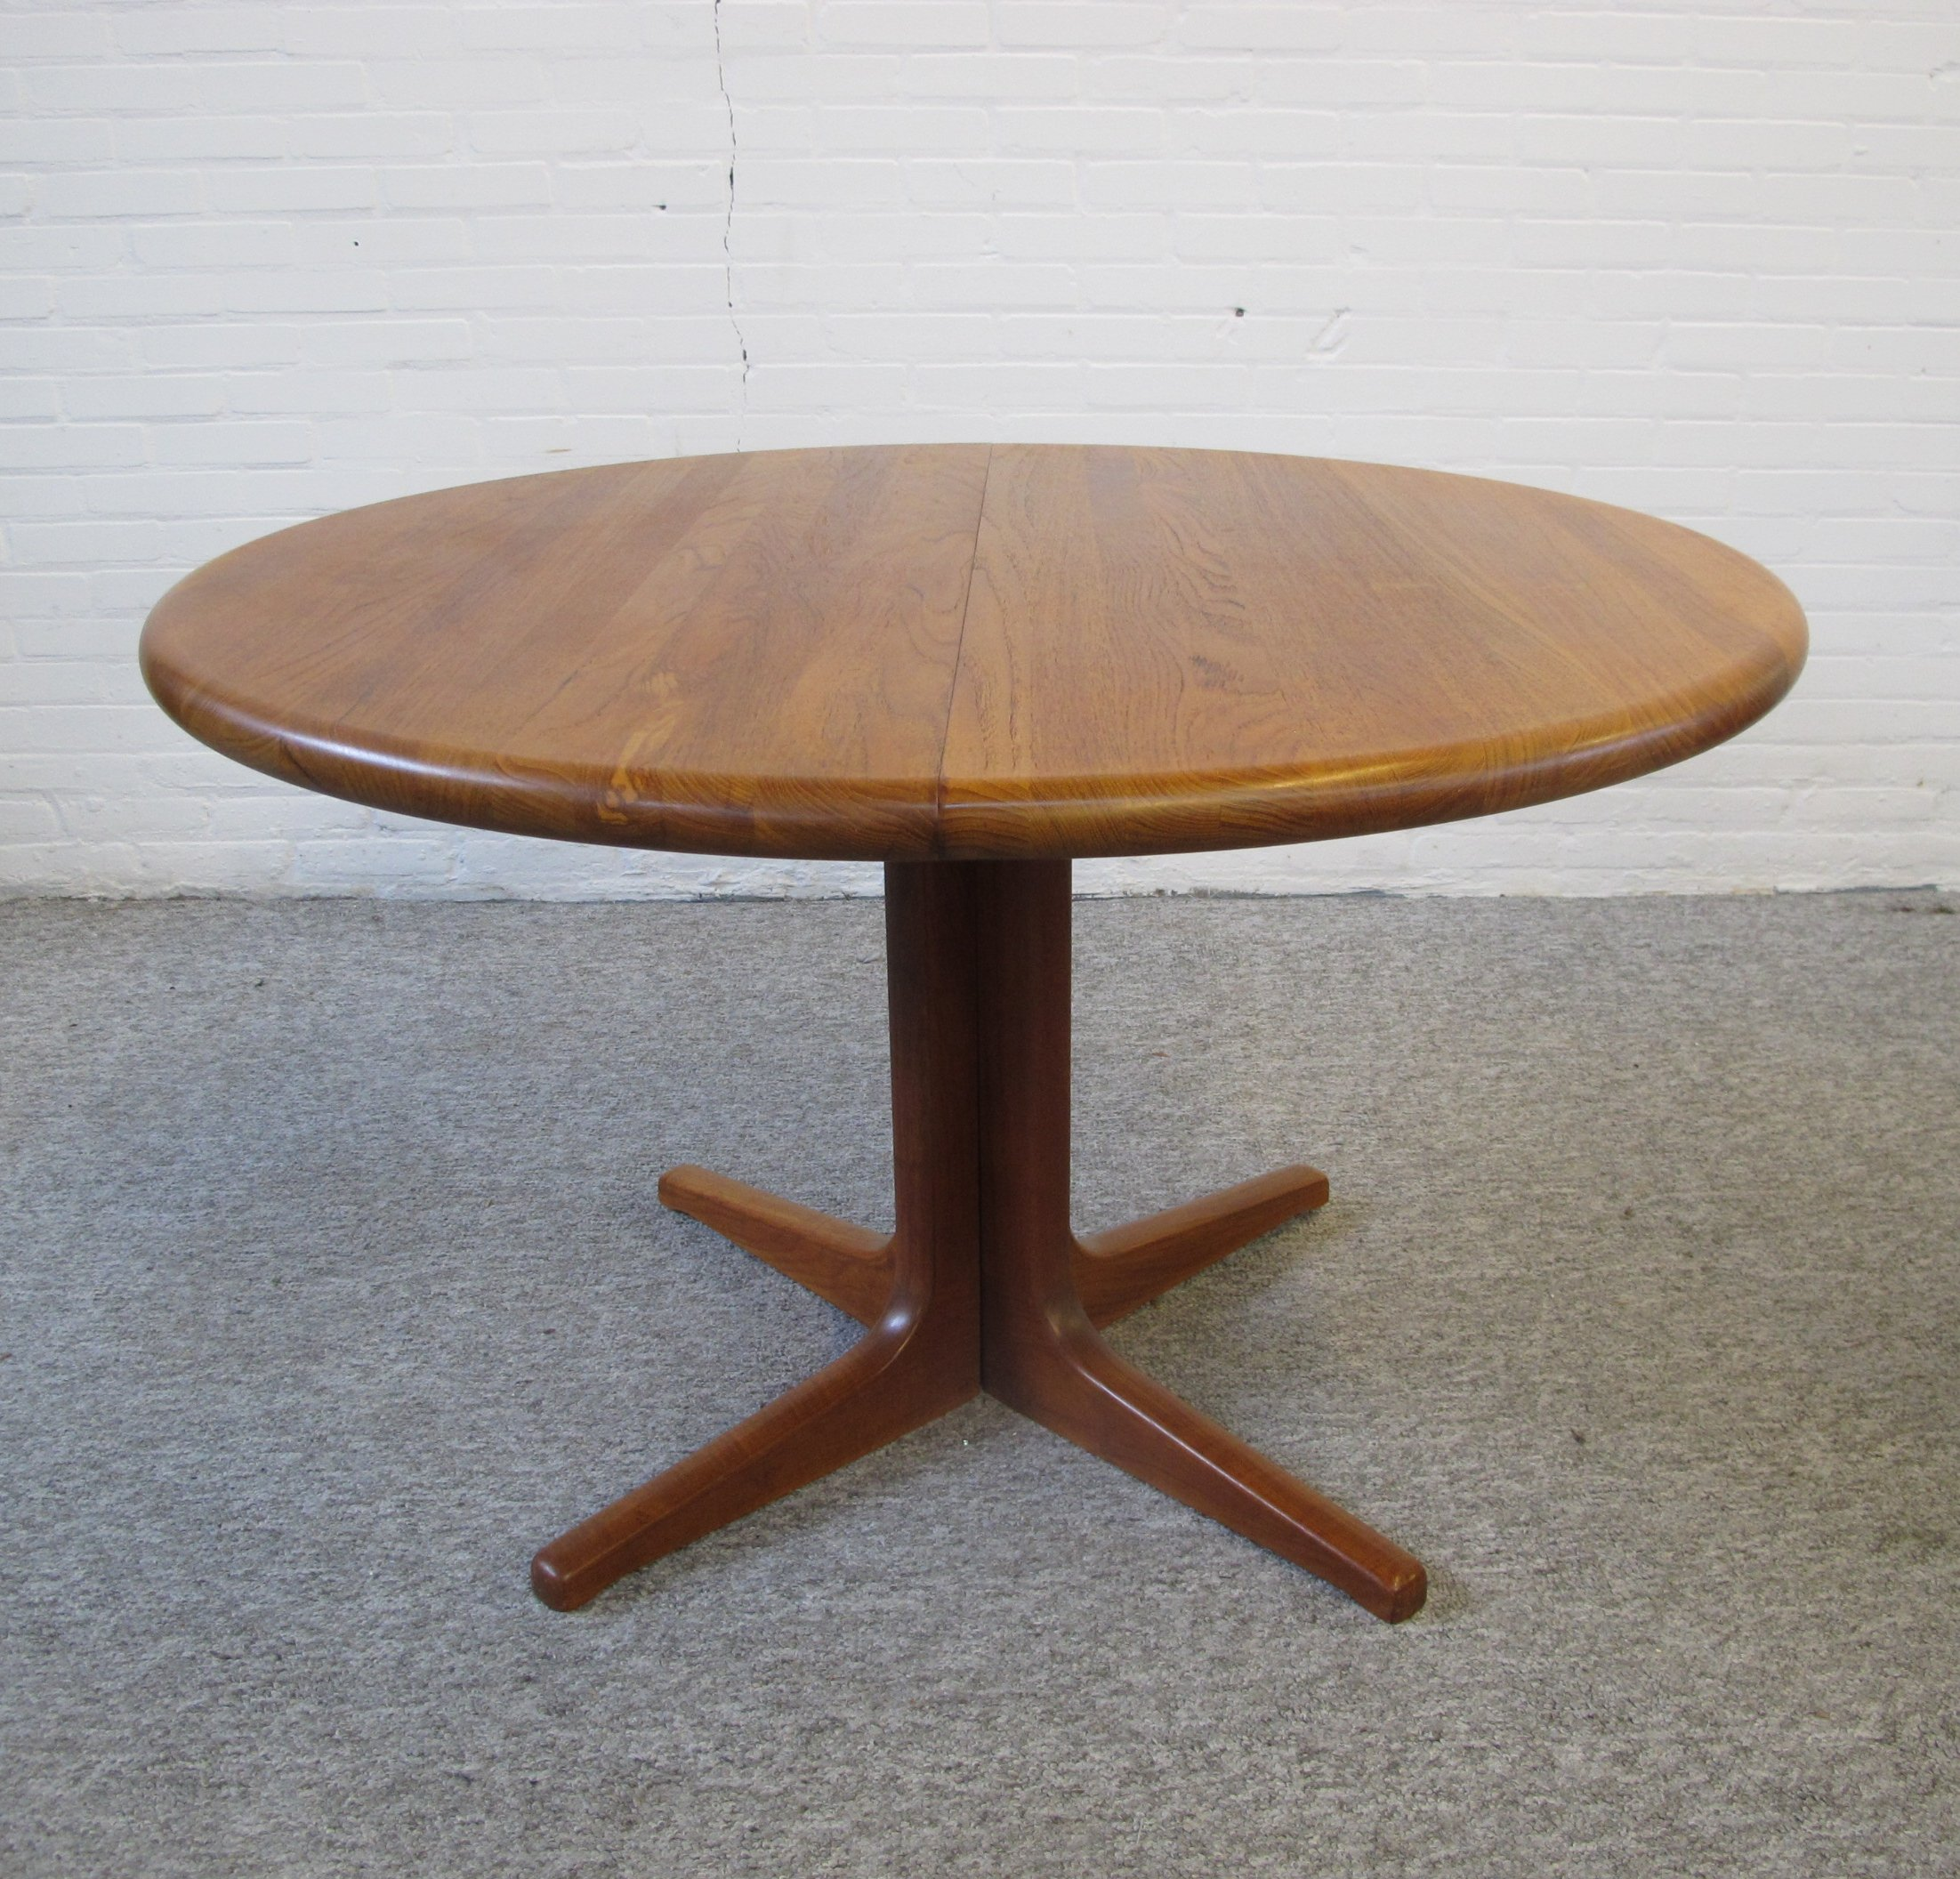 Midcentury Extendable Dining Table By Glostrup Denmark 1960s 94588